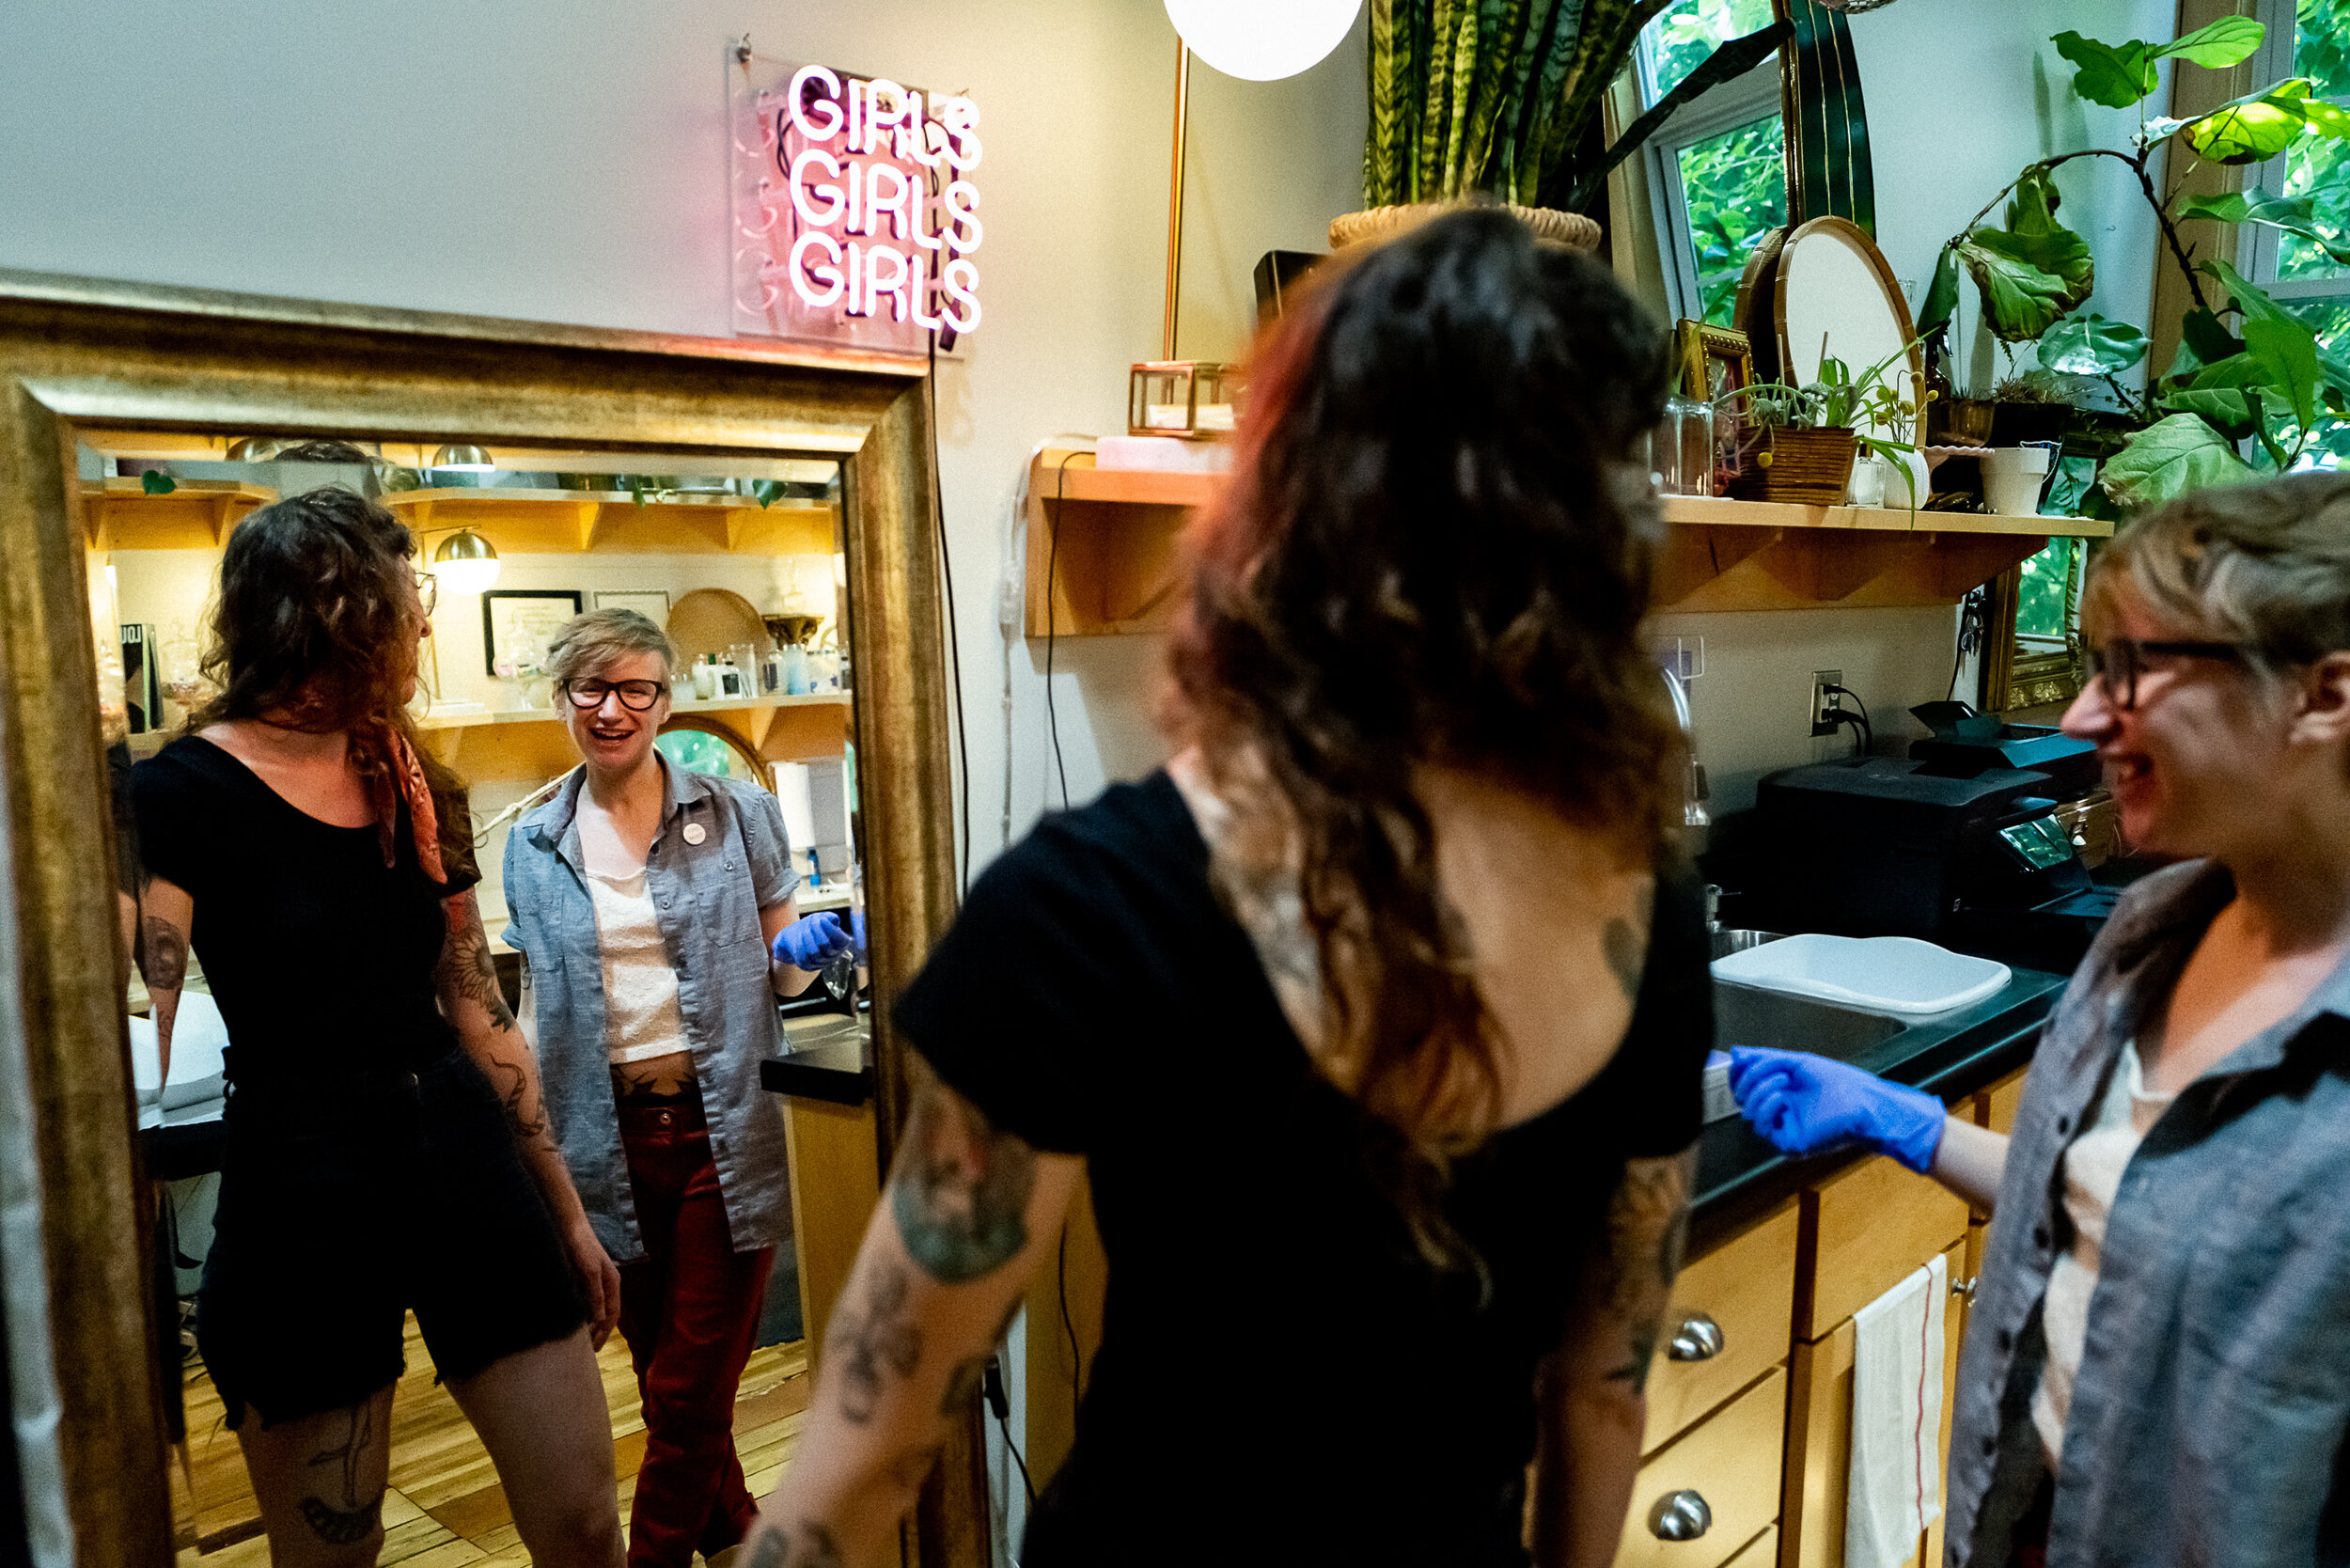 """""""When I released myself from being defined as a woman, all of a sudden I could feel very pretty. I could look in the mirror and say 'I'm neither of you and I'm both of you'."""" Ray consults with a client in their tattoo studio, The Aldrich, where the motto is """"Respect Every Body""""."""